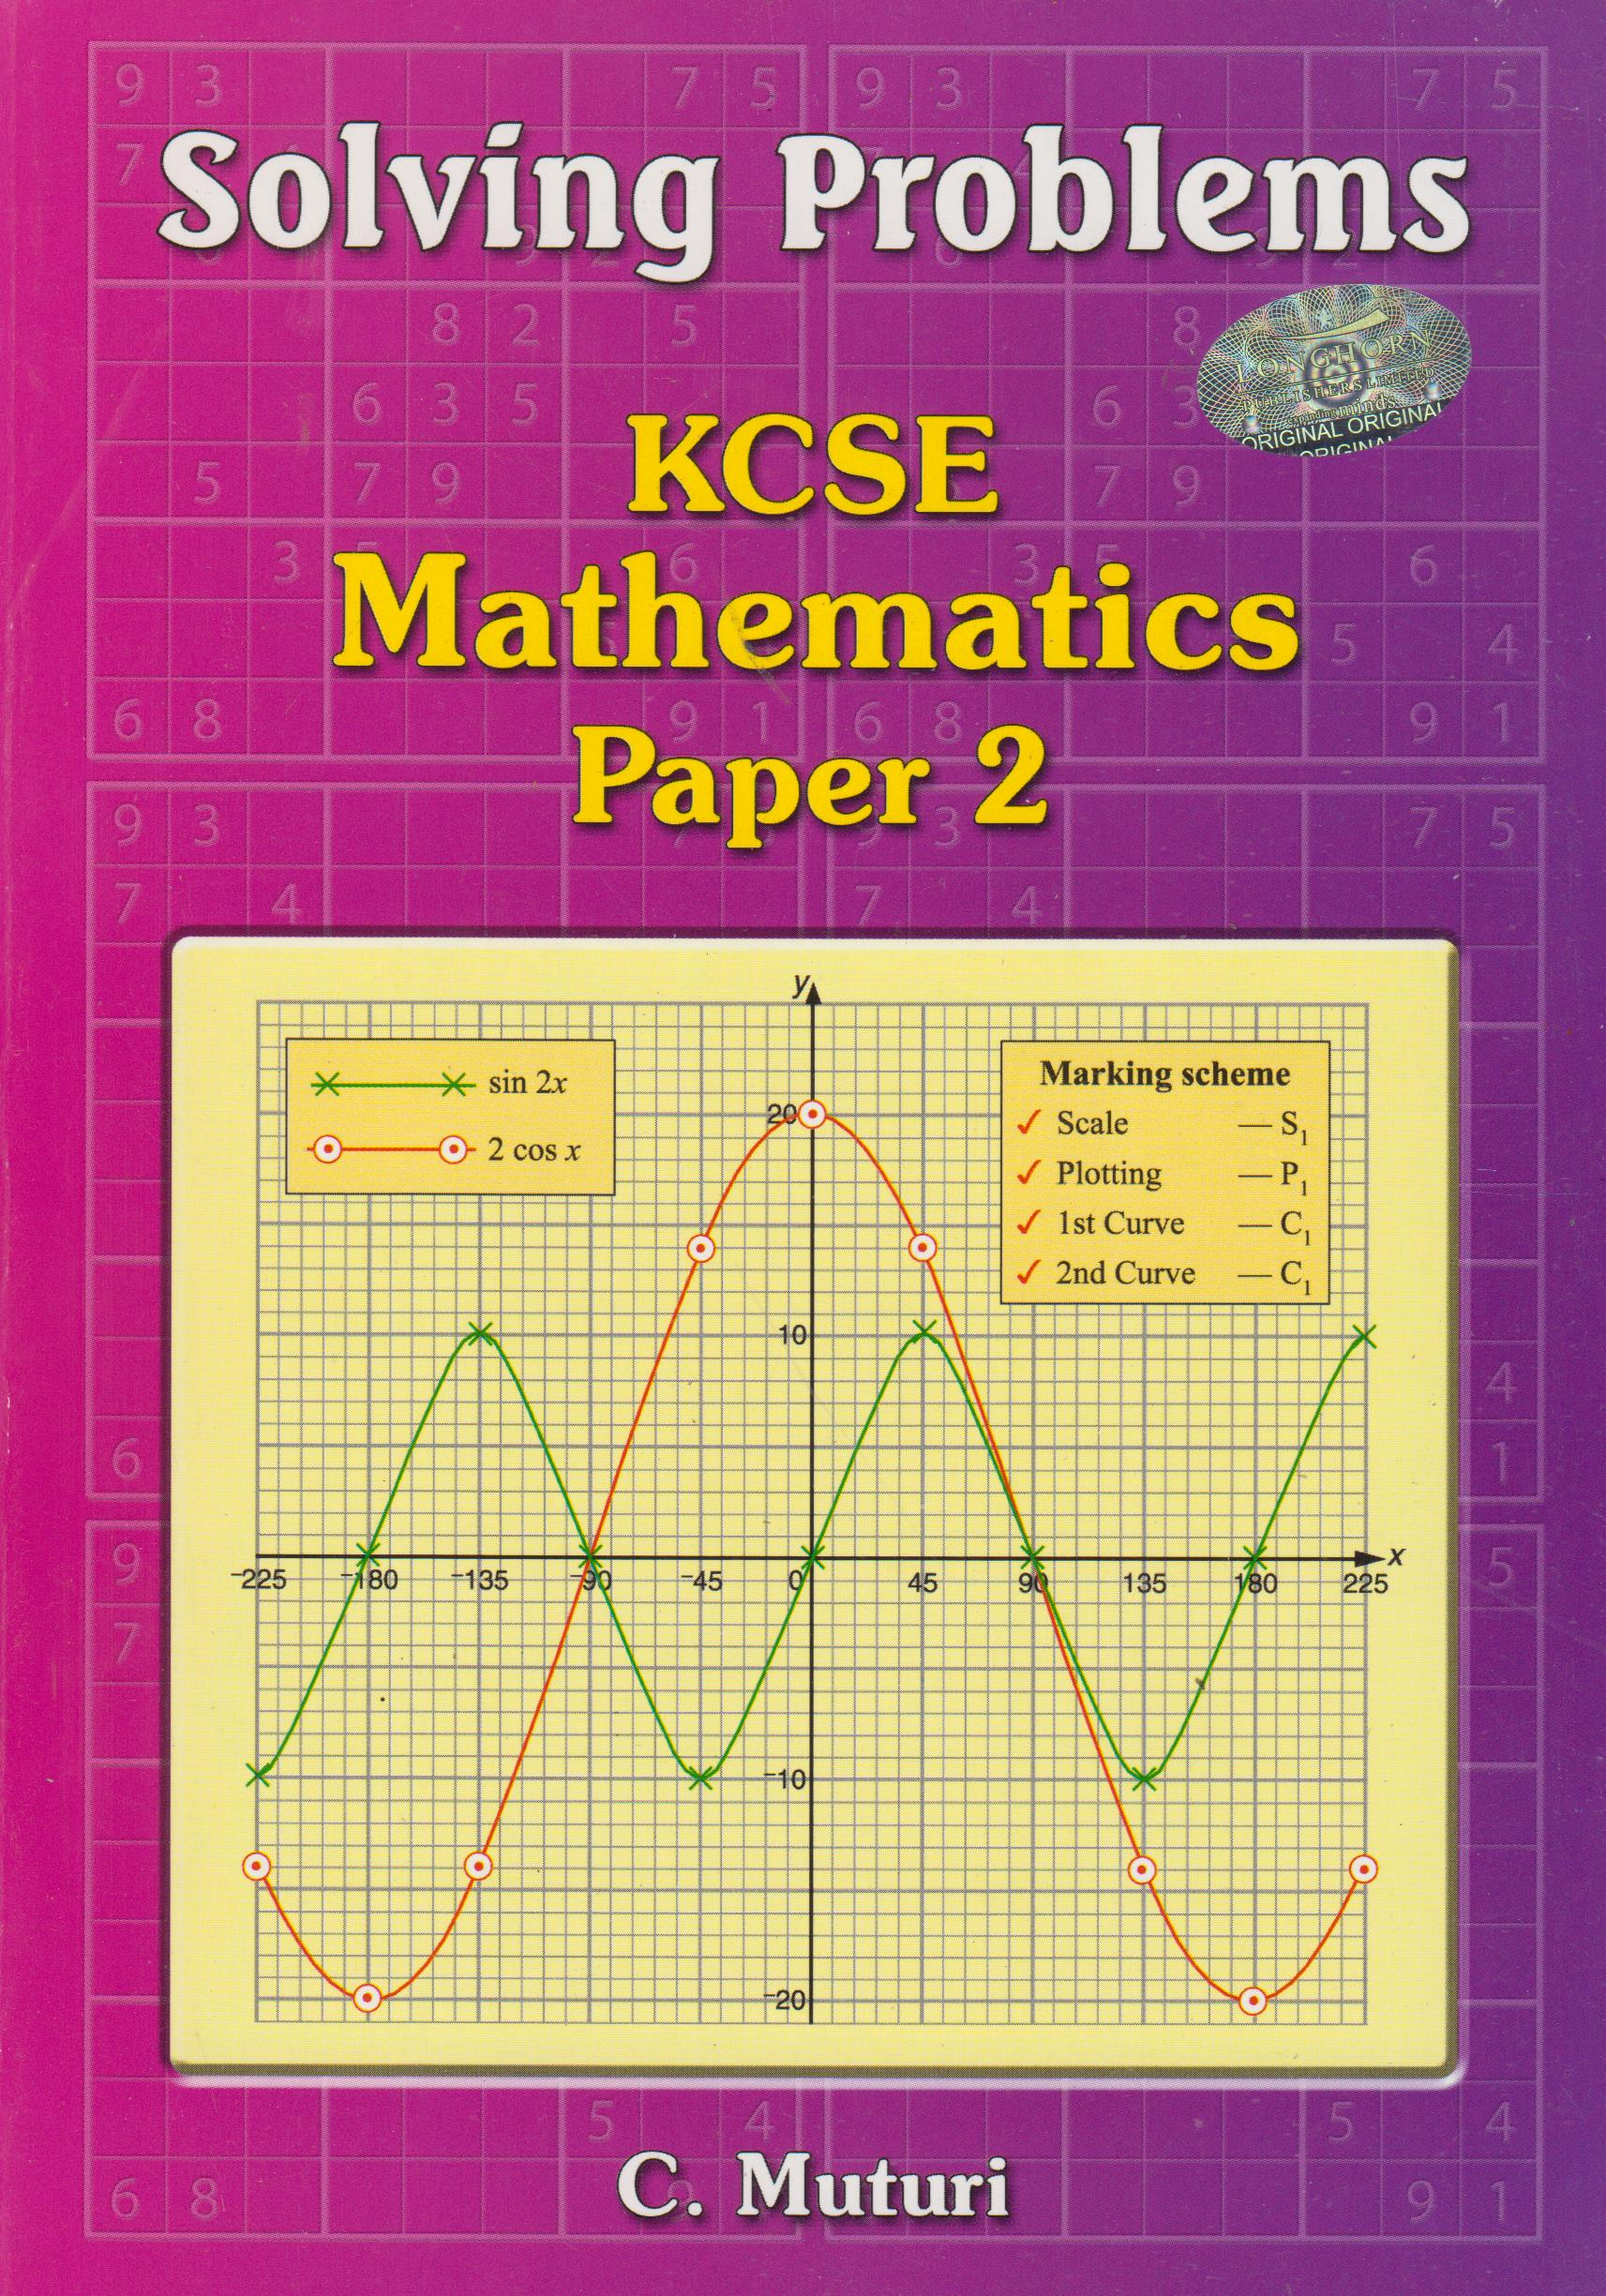 Solving Problems KCSE Mathematics Paper 2 | Books, Stationery, Computers,  Laptops and more  Buy online and get free delivery on orders above Ksh